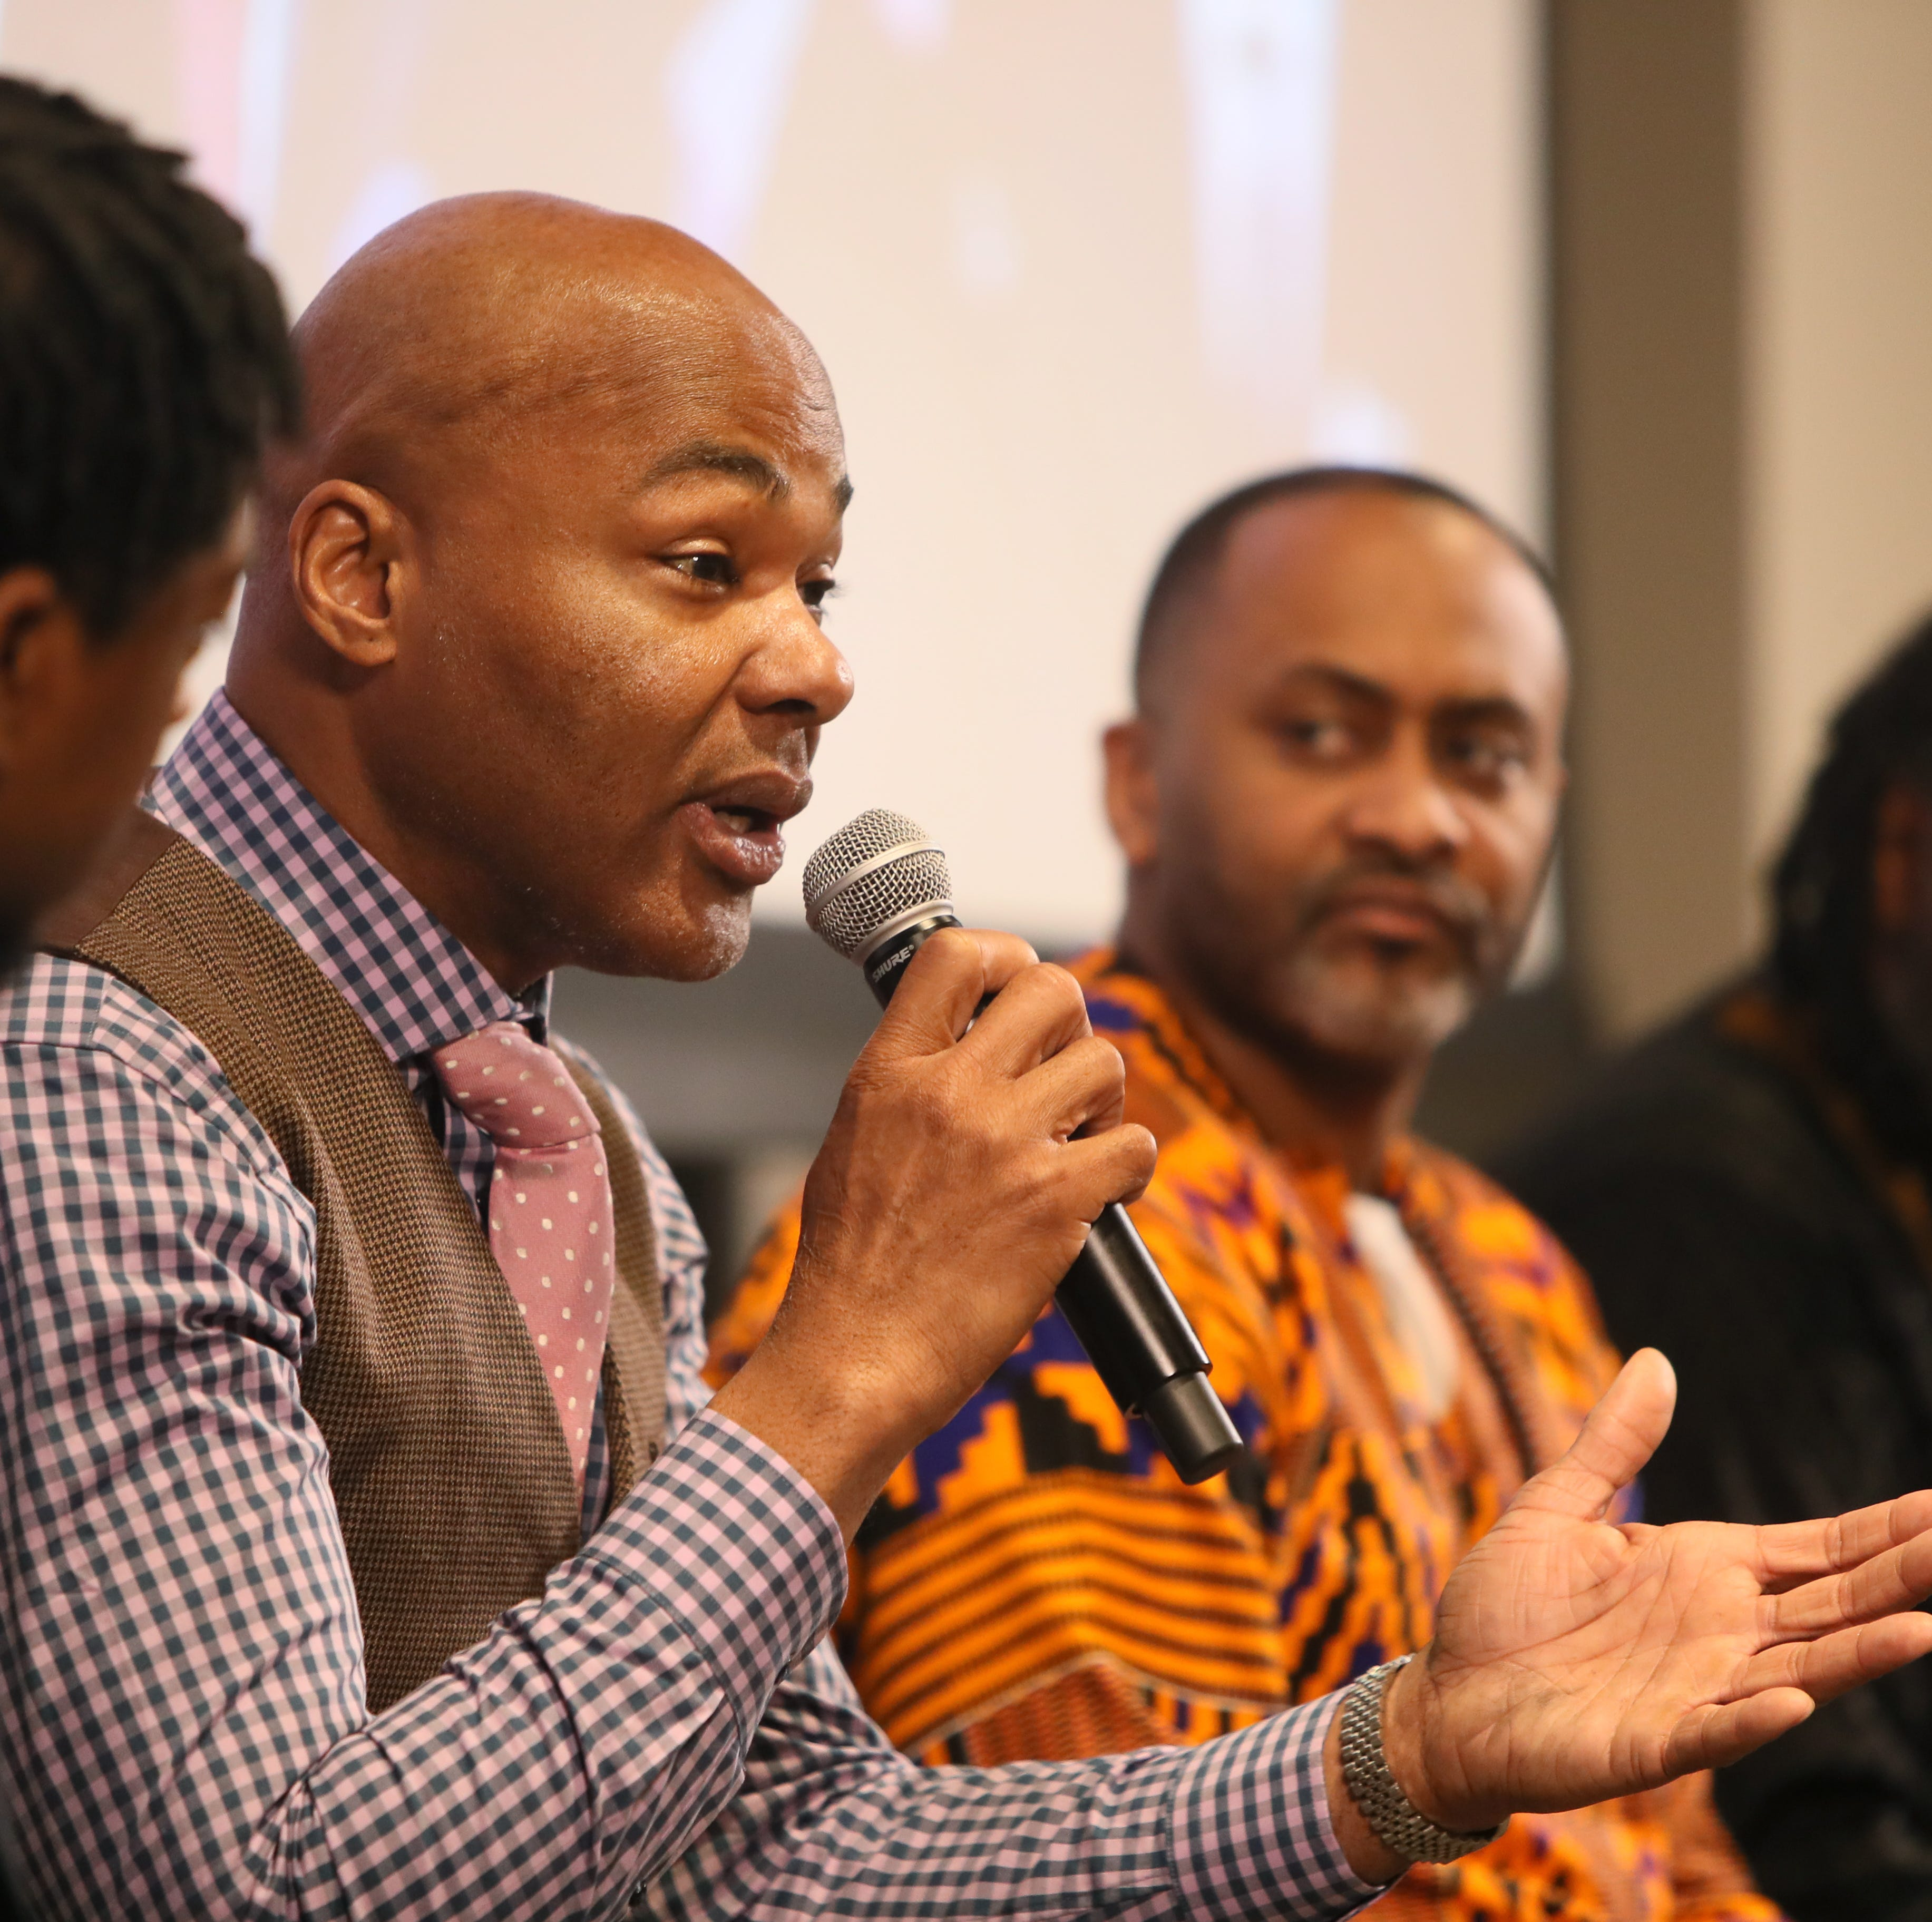 Maximizing Manhood Symposium: Aiming to build support for African-American men